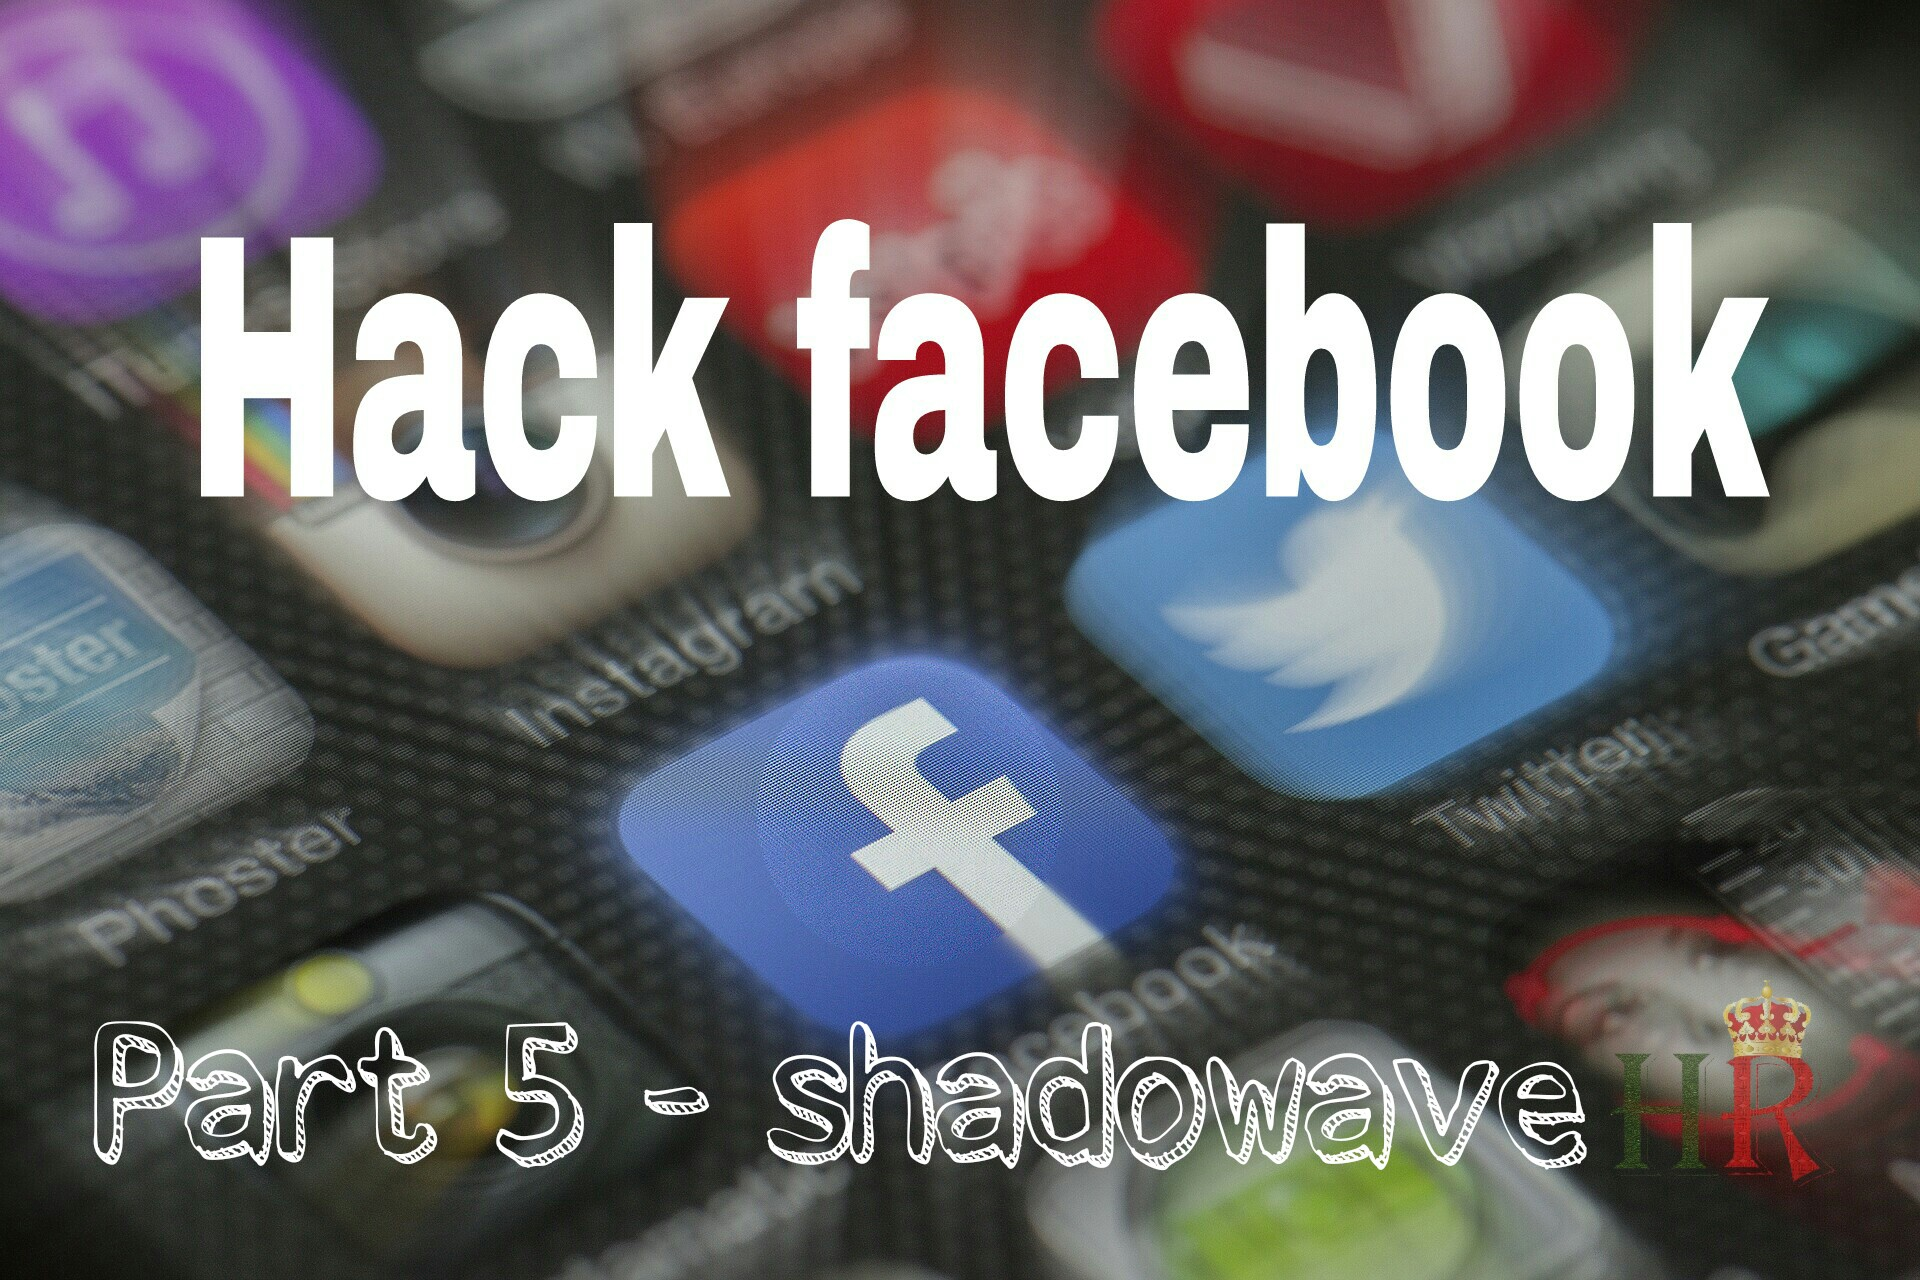 Shadowave apk - hack fb id by sending link